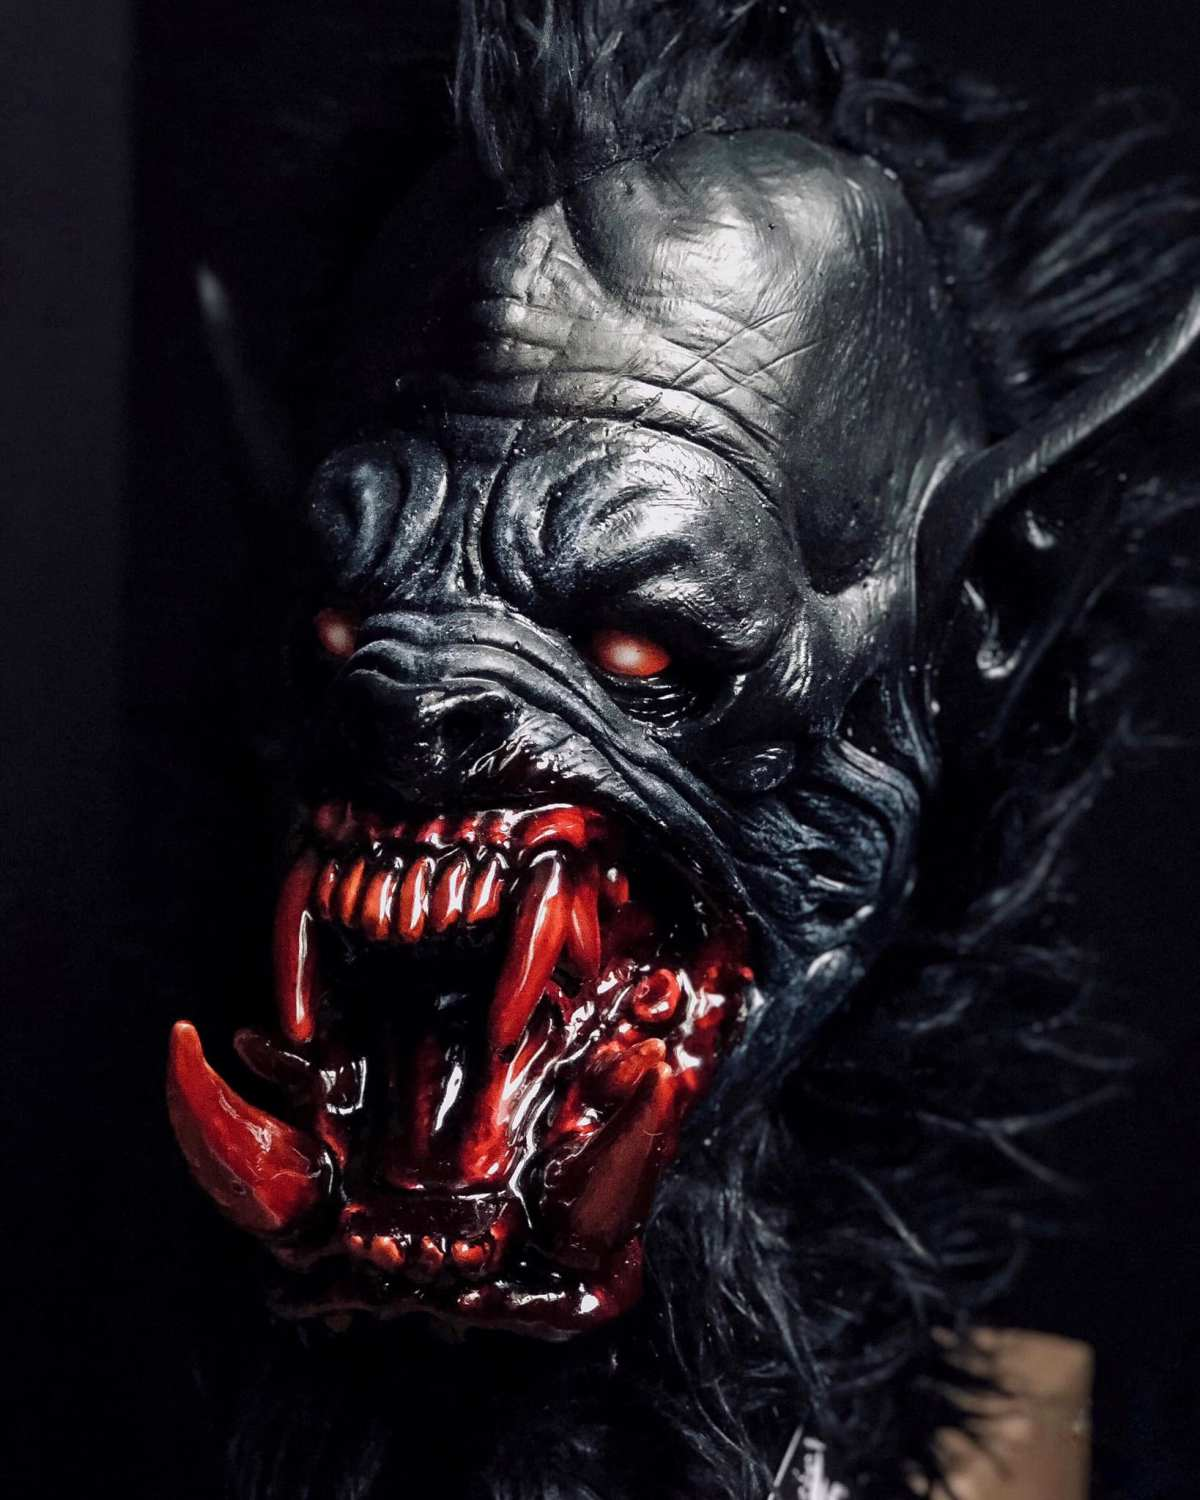 Nightmare Force's DemonDawg Mask is a Real Monster featured image